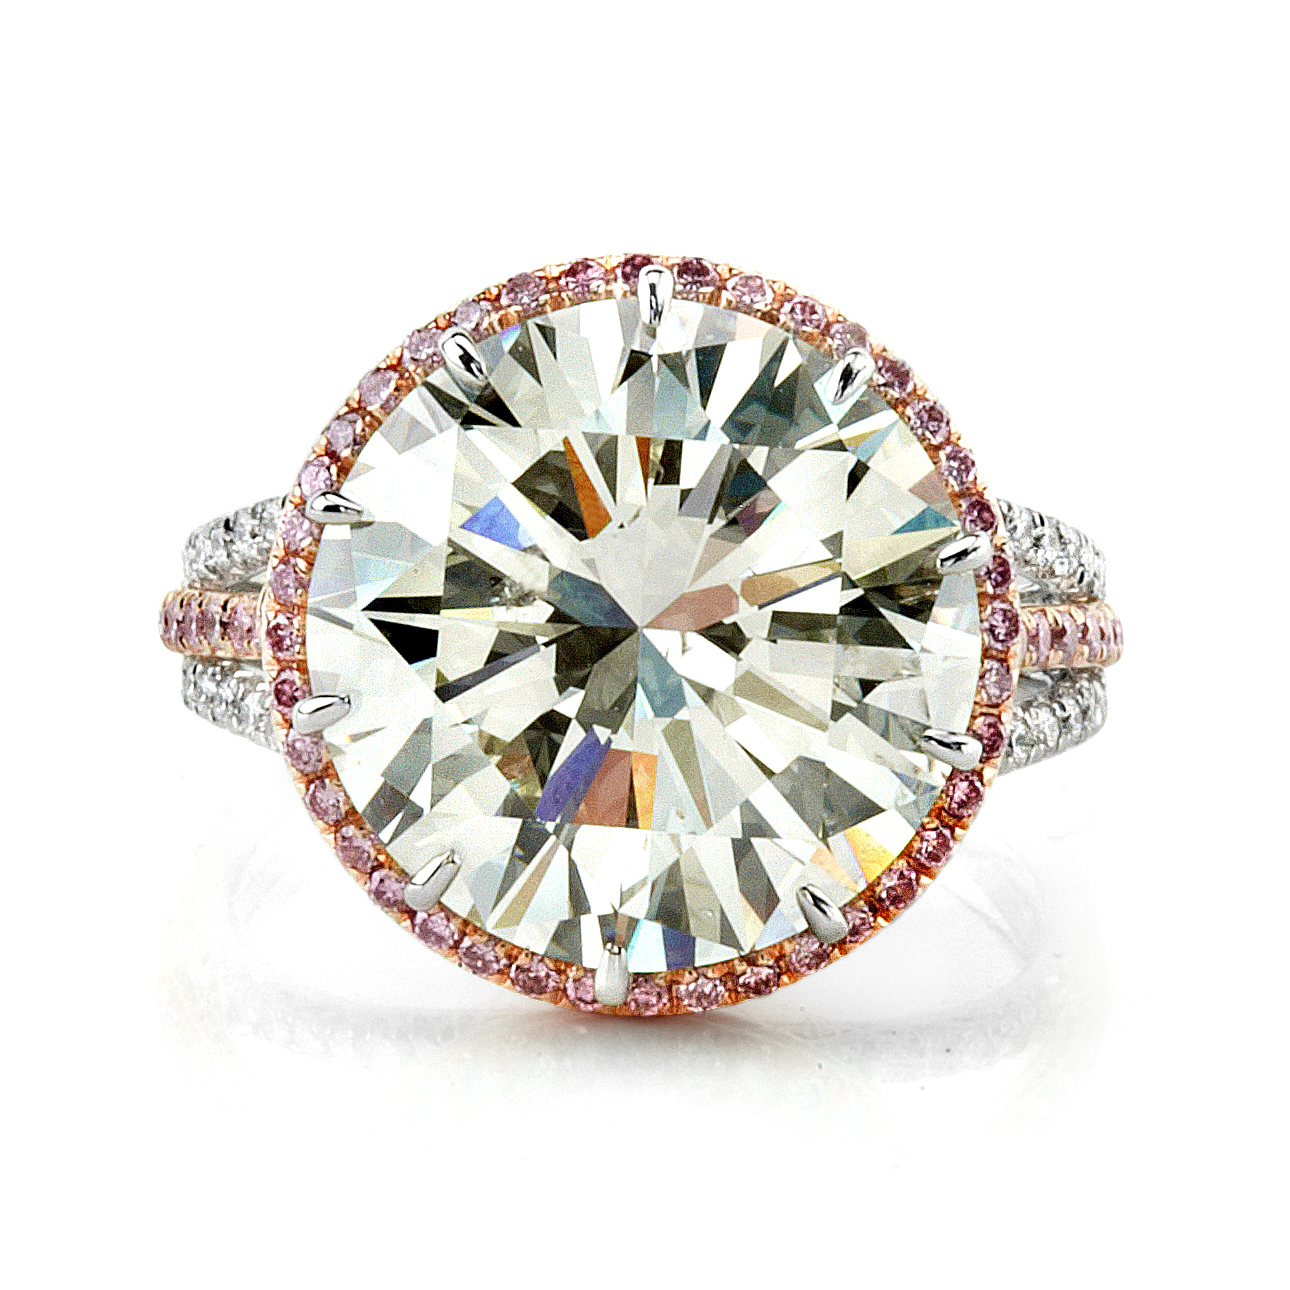 VICE  oversized round brilliant diamond placed in a ten-prong platinum and rose gold setting. This design features a narrow halo of natural fancy pink diamonds around the center diamond, as well as a triple shank band which showcases this diamond in a magnificant way.